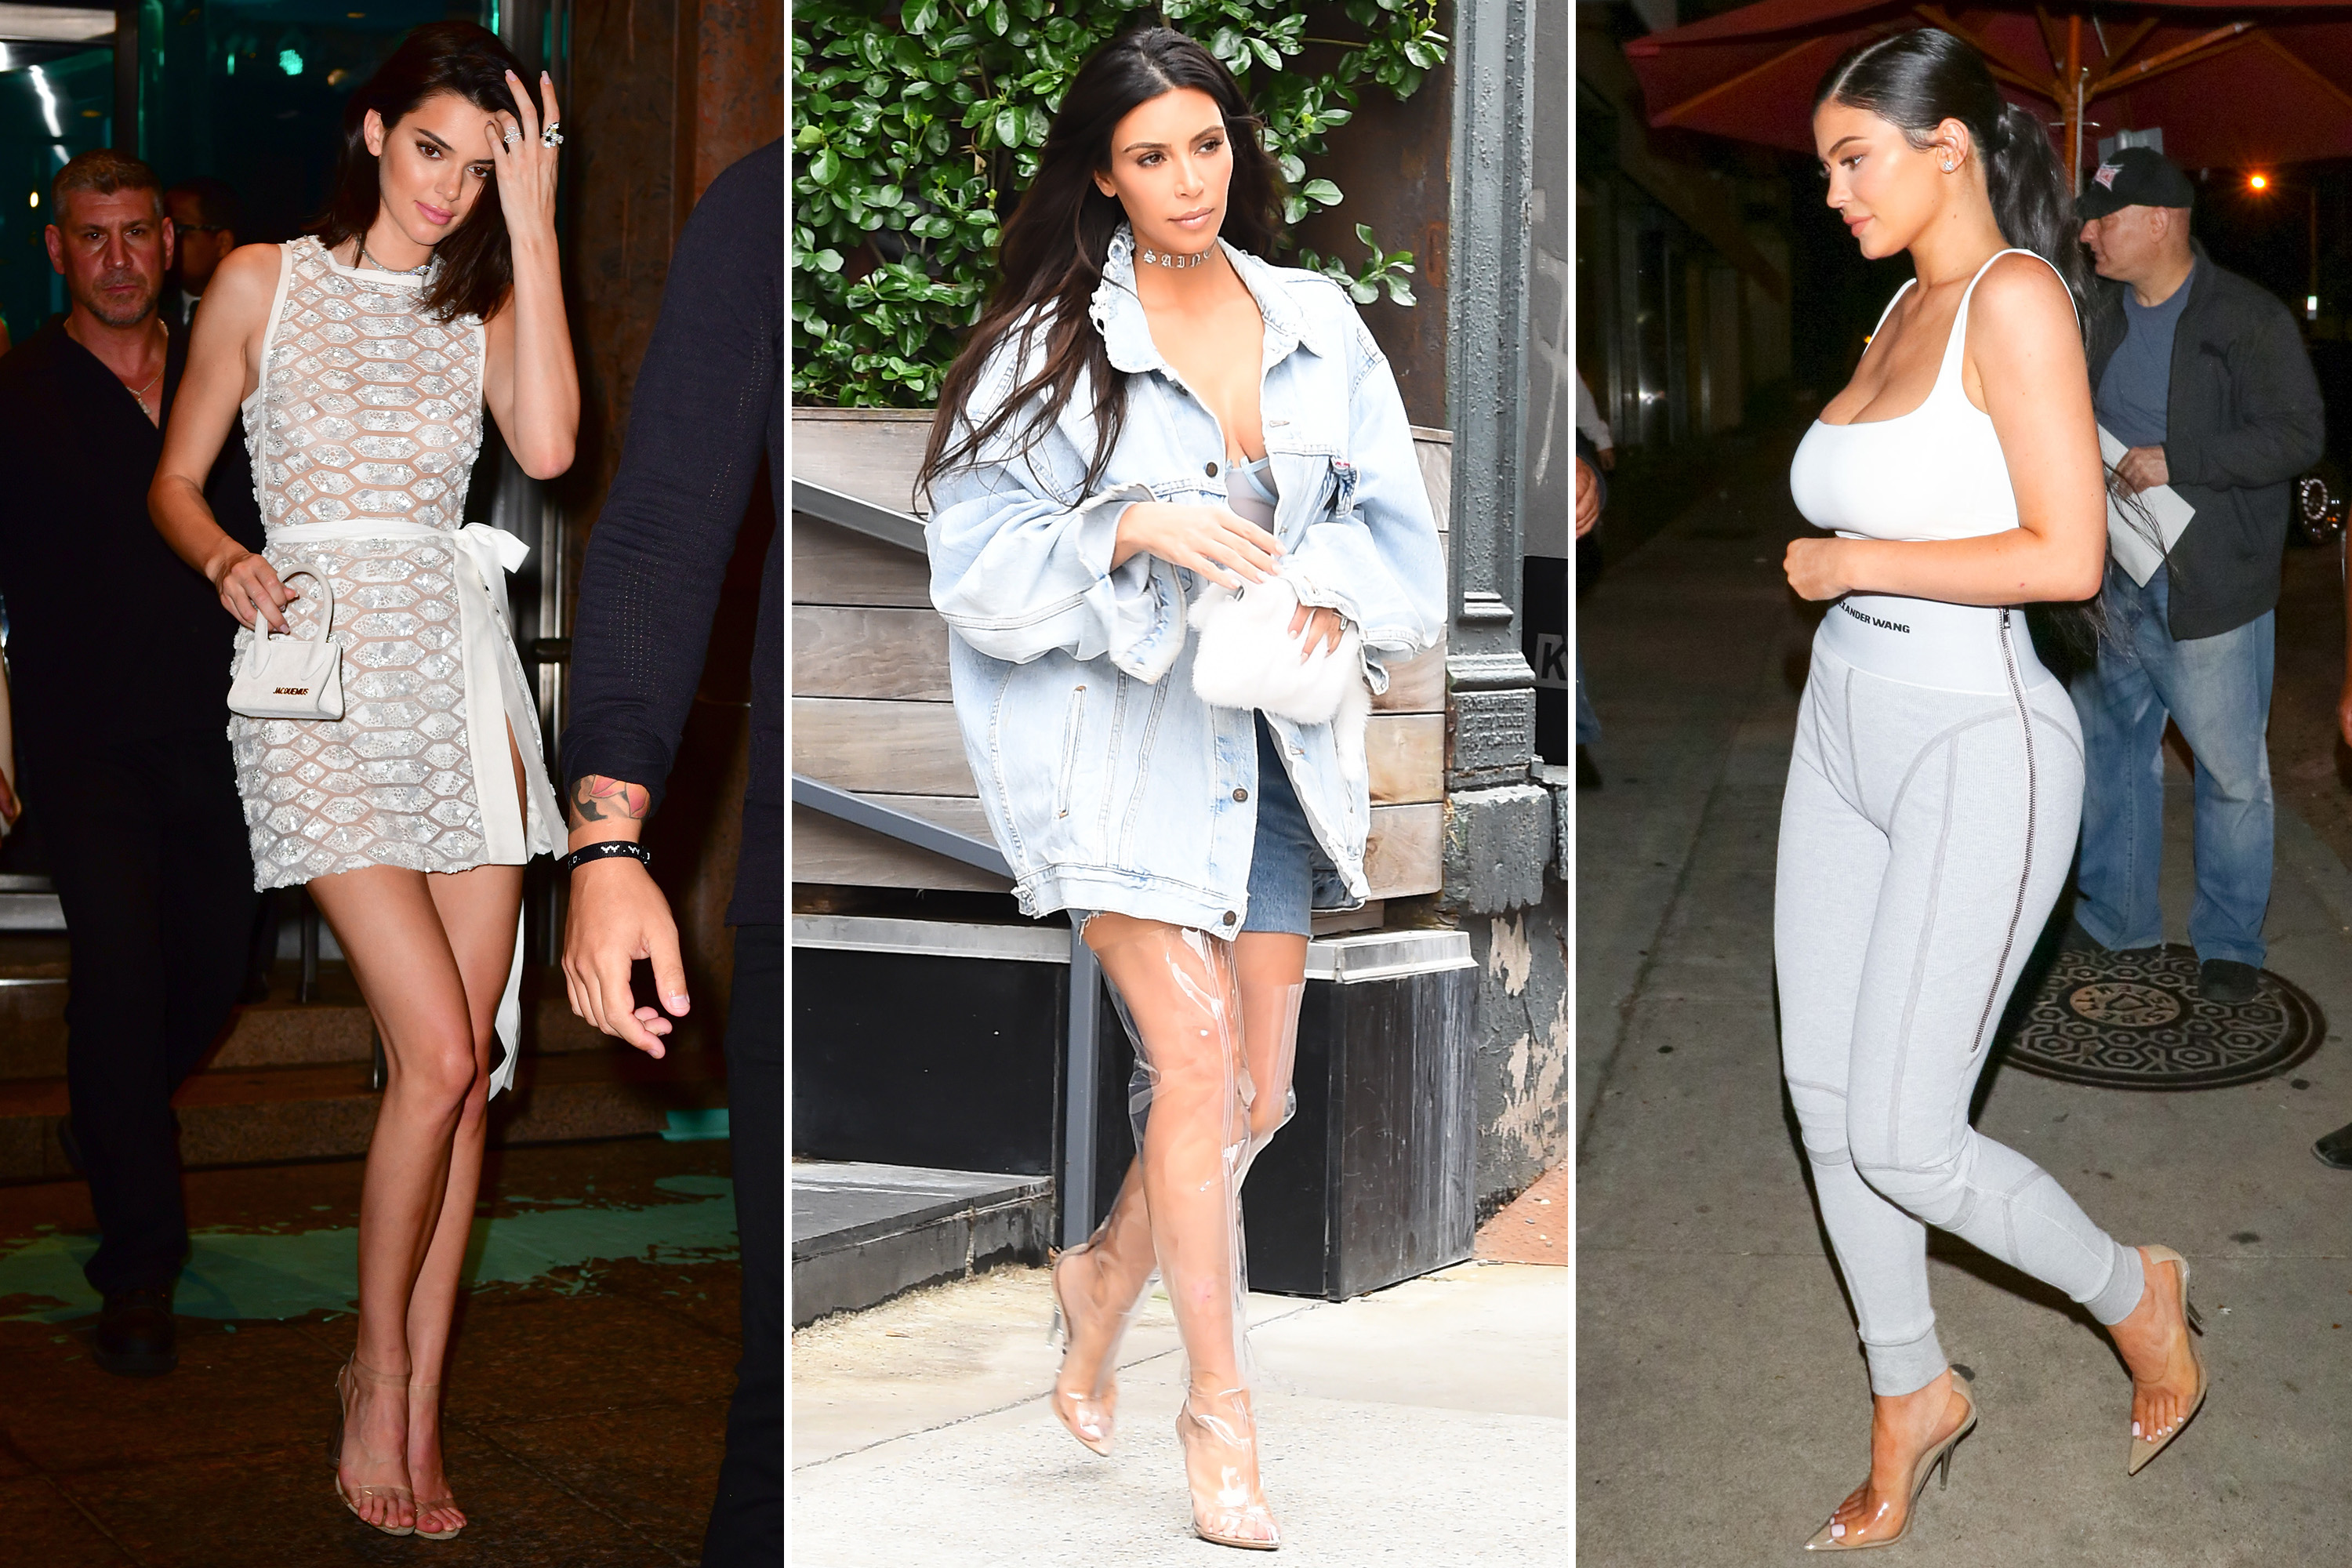 Kardashian Approved Clear Plastic Shoes Are A Serious Risk Doctor Says